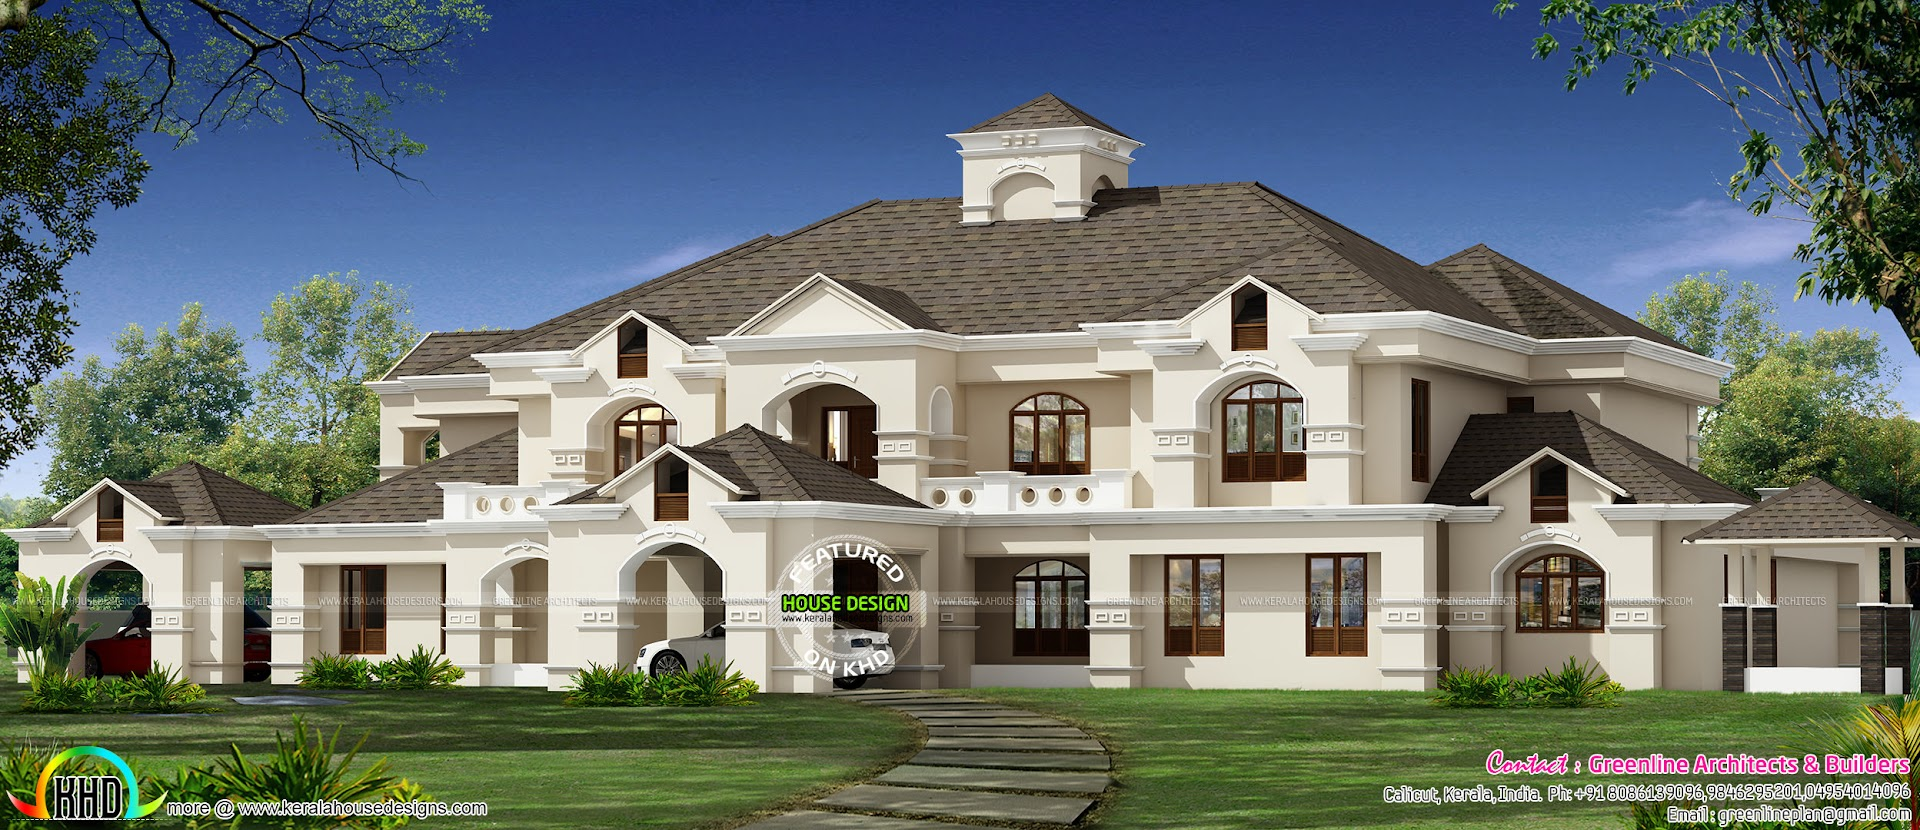 Colonial luxury house plans 28 images traditional for Luxury house plan